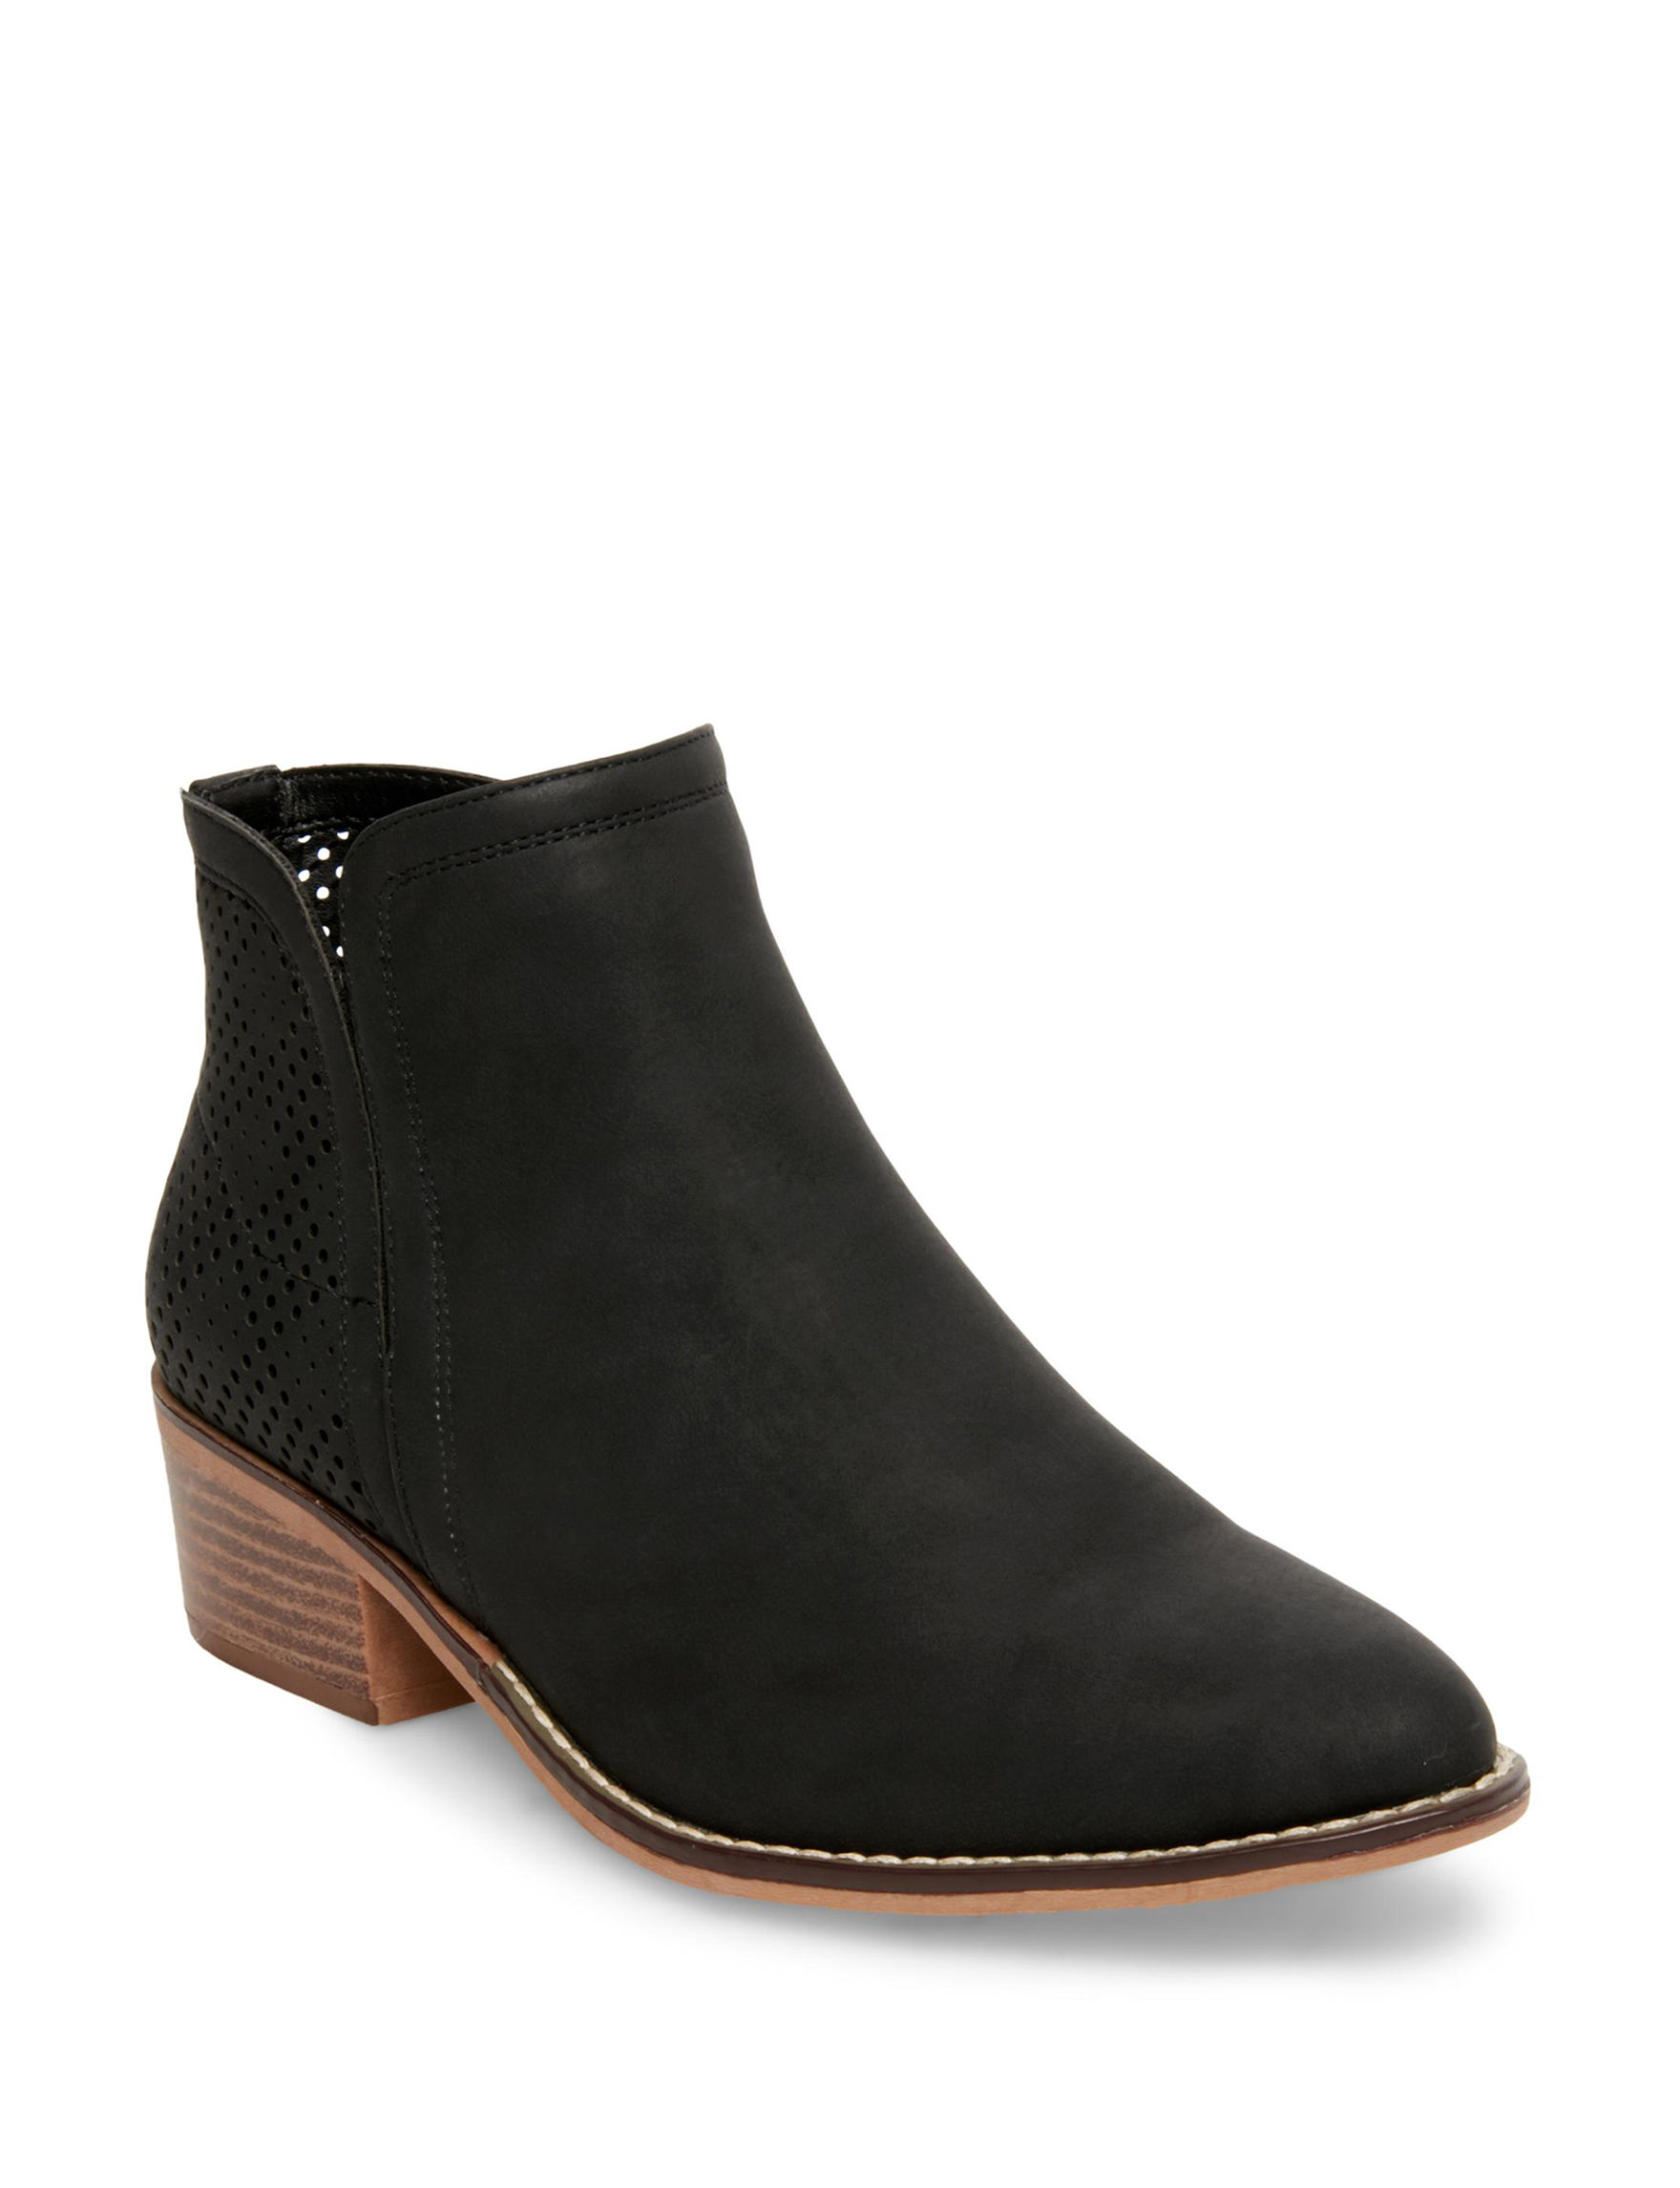 Madden Girl Black Ankle Boots & Booties